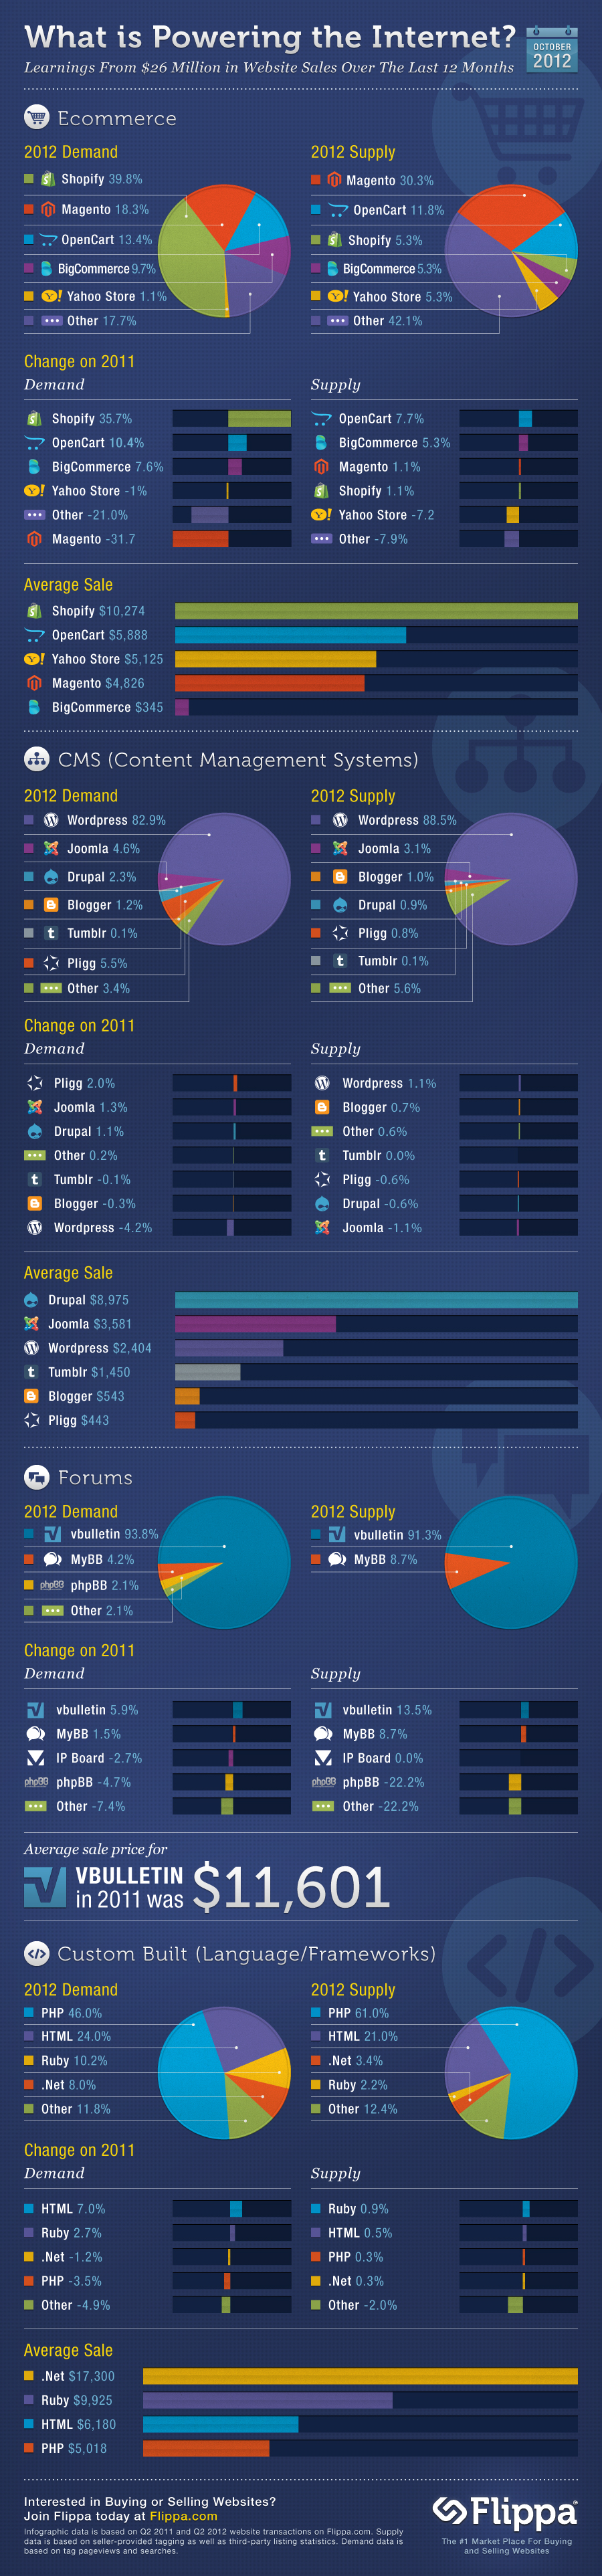 Infographic from thenextweb - what platforms are powering the internet based on flippa.com